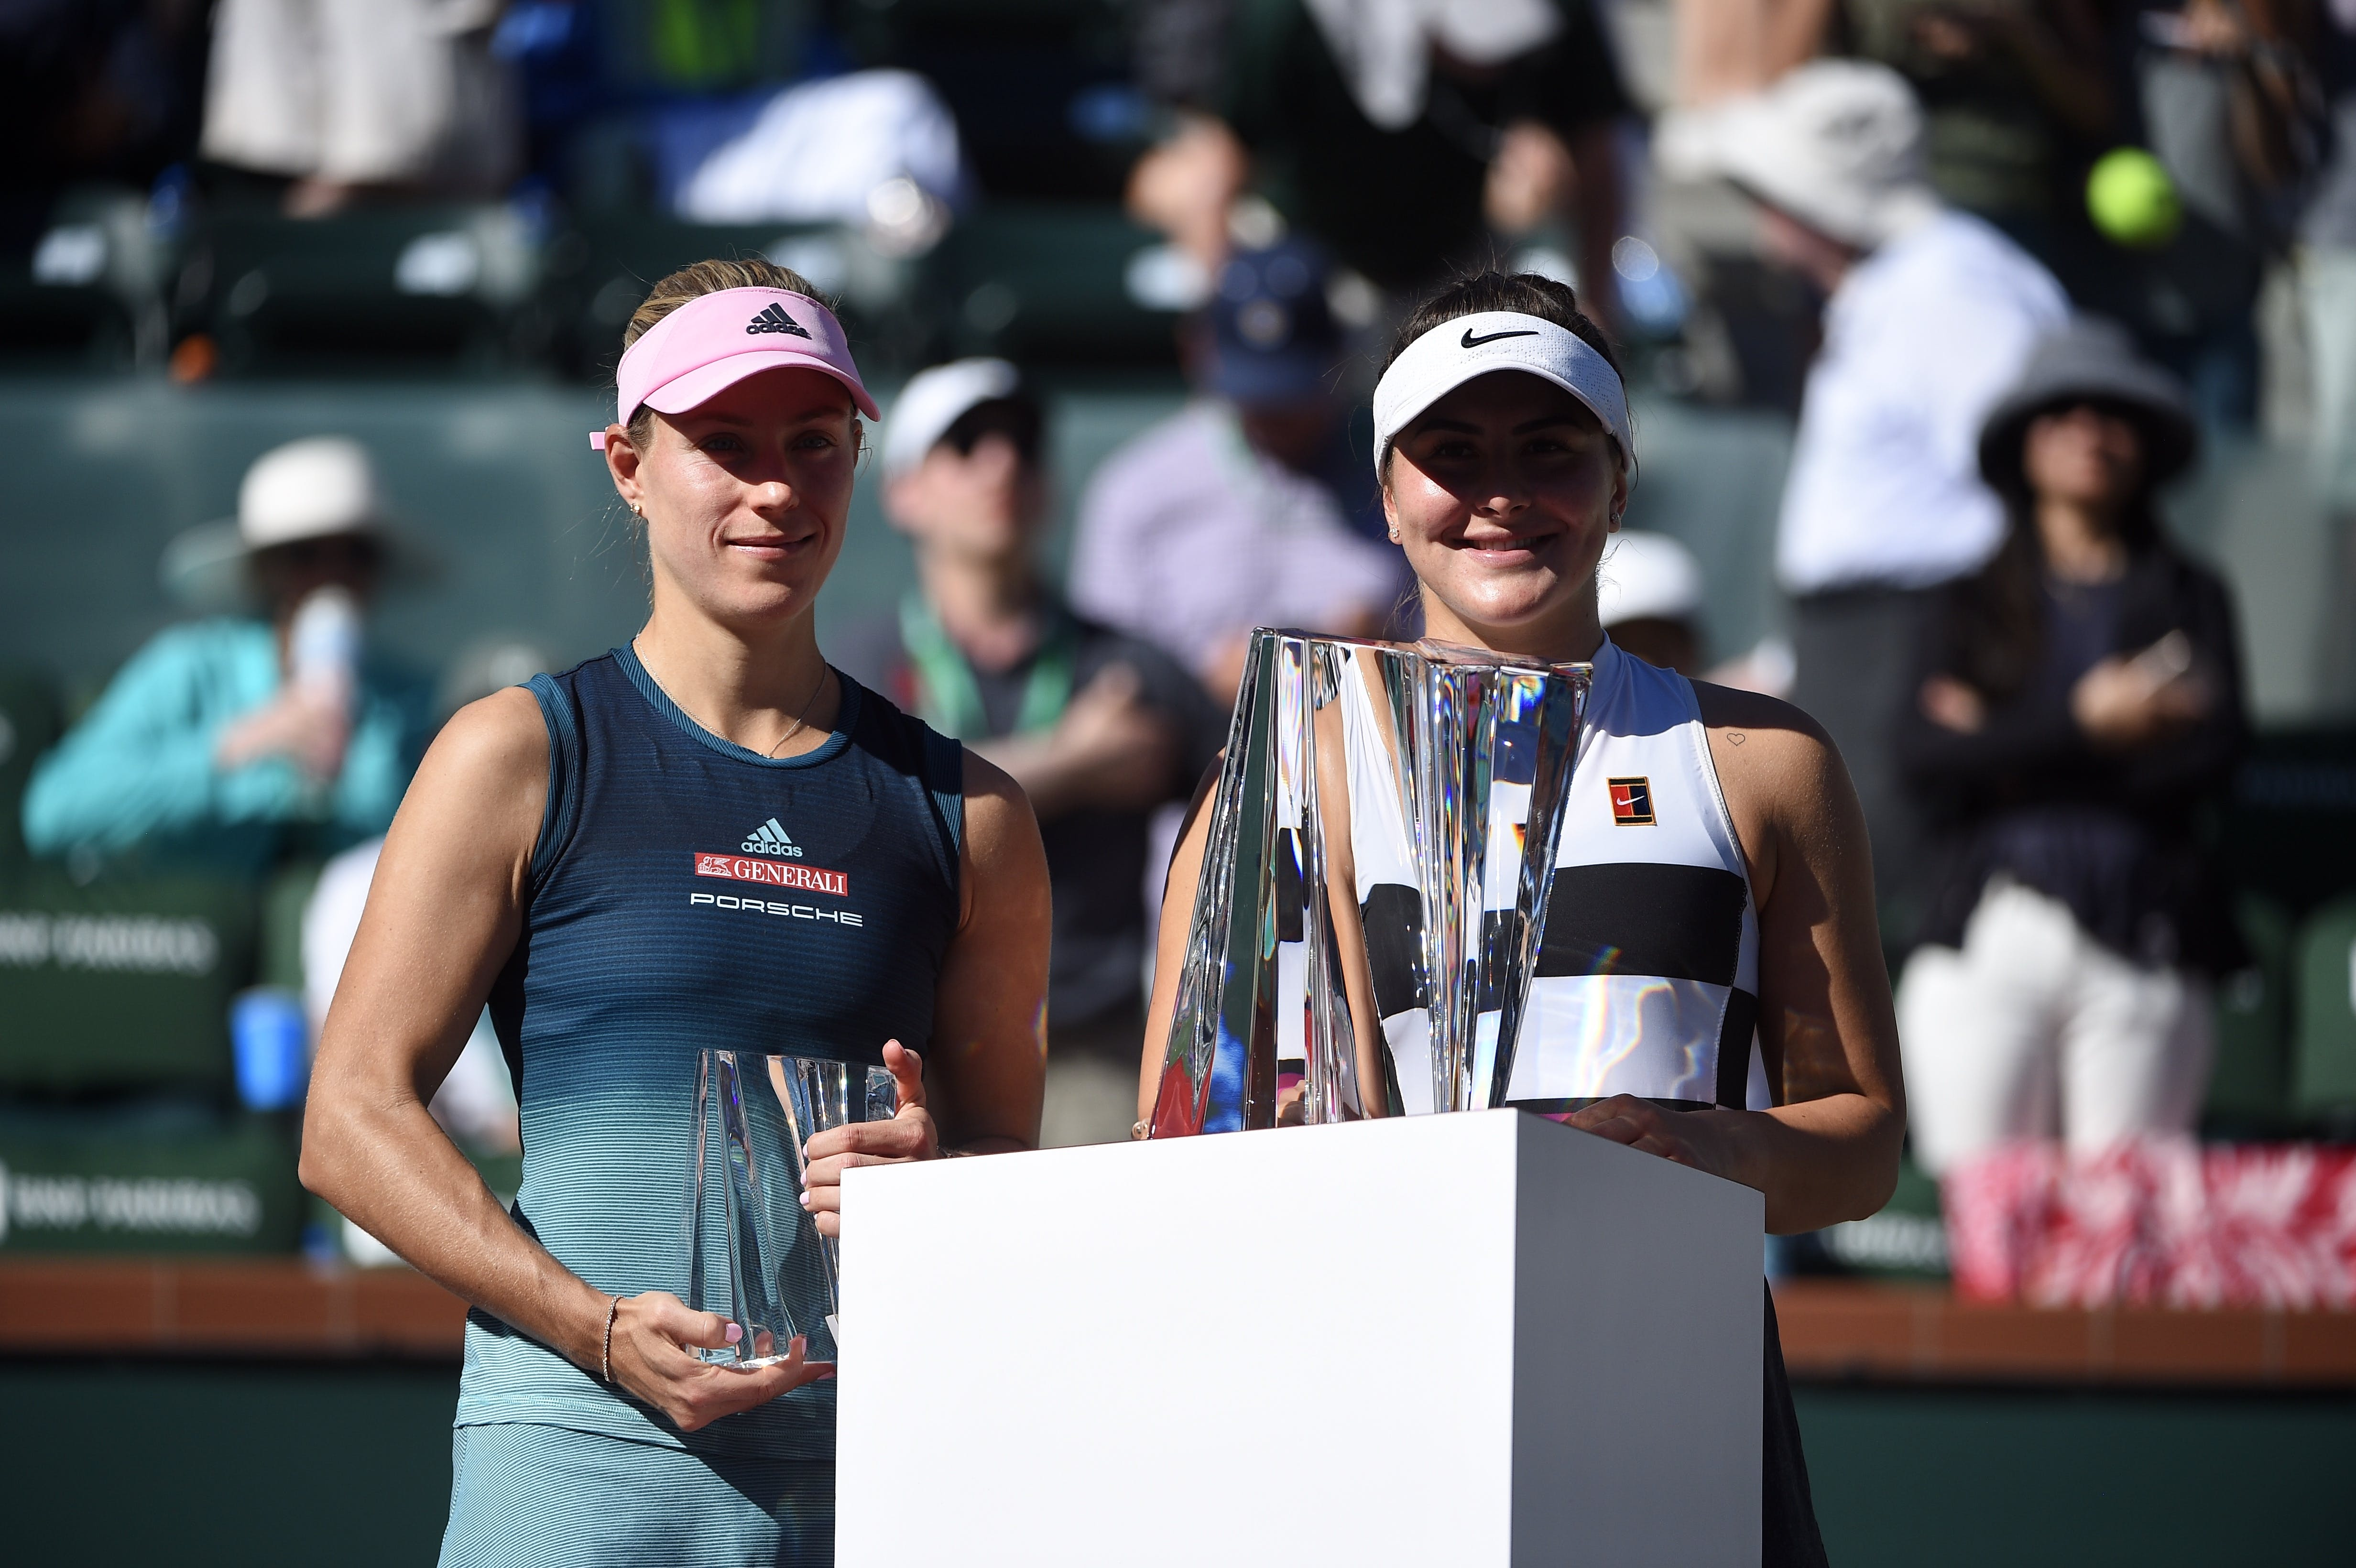 18-year-old @Bandreescu_ outlasted reigning Wimbledon champion Angelique Kerber to claim her first-ever WTA singles title at the BNP PARIBAS OPEN.